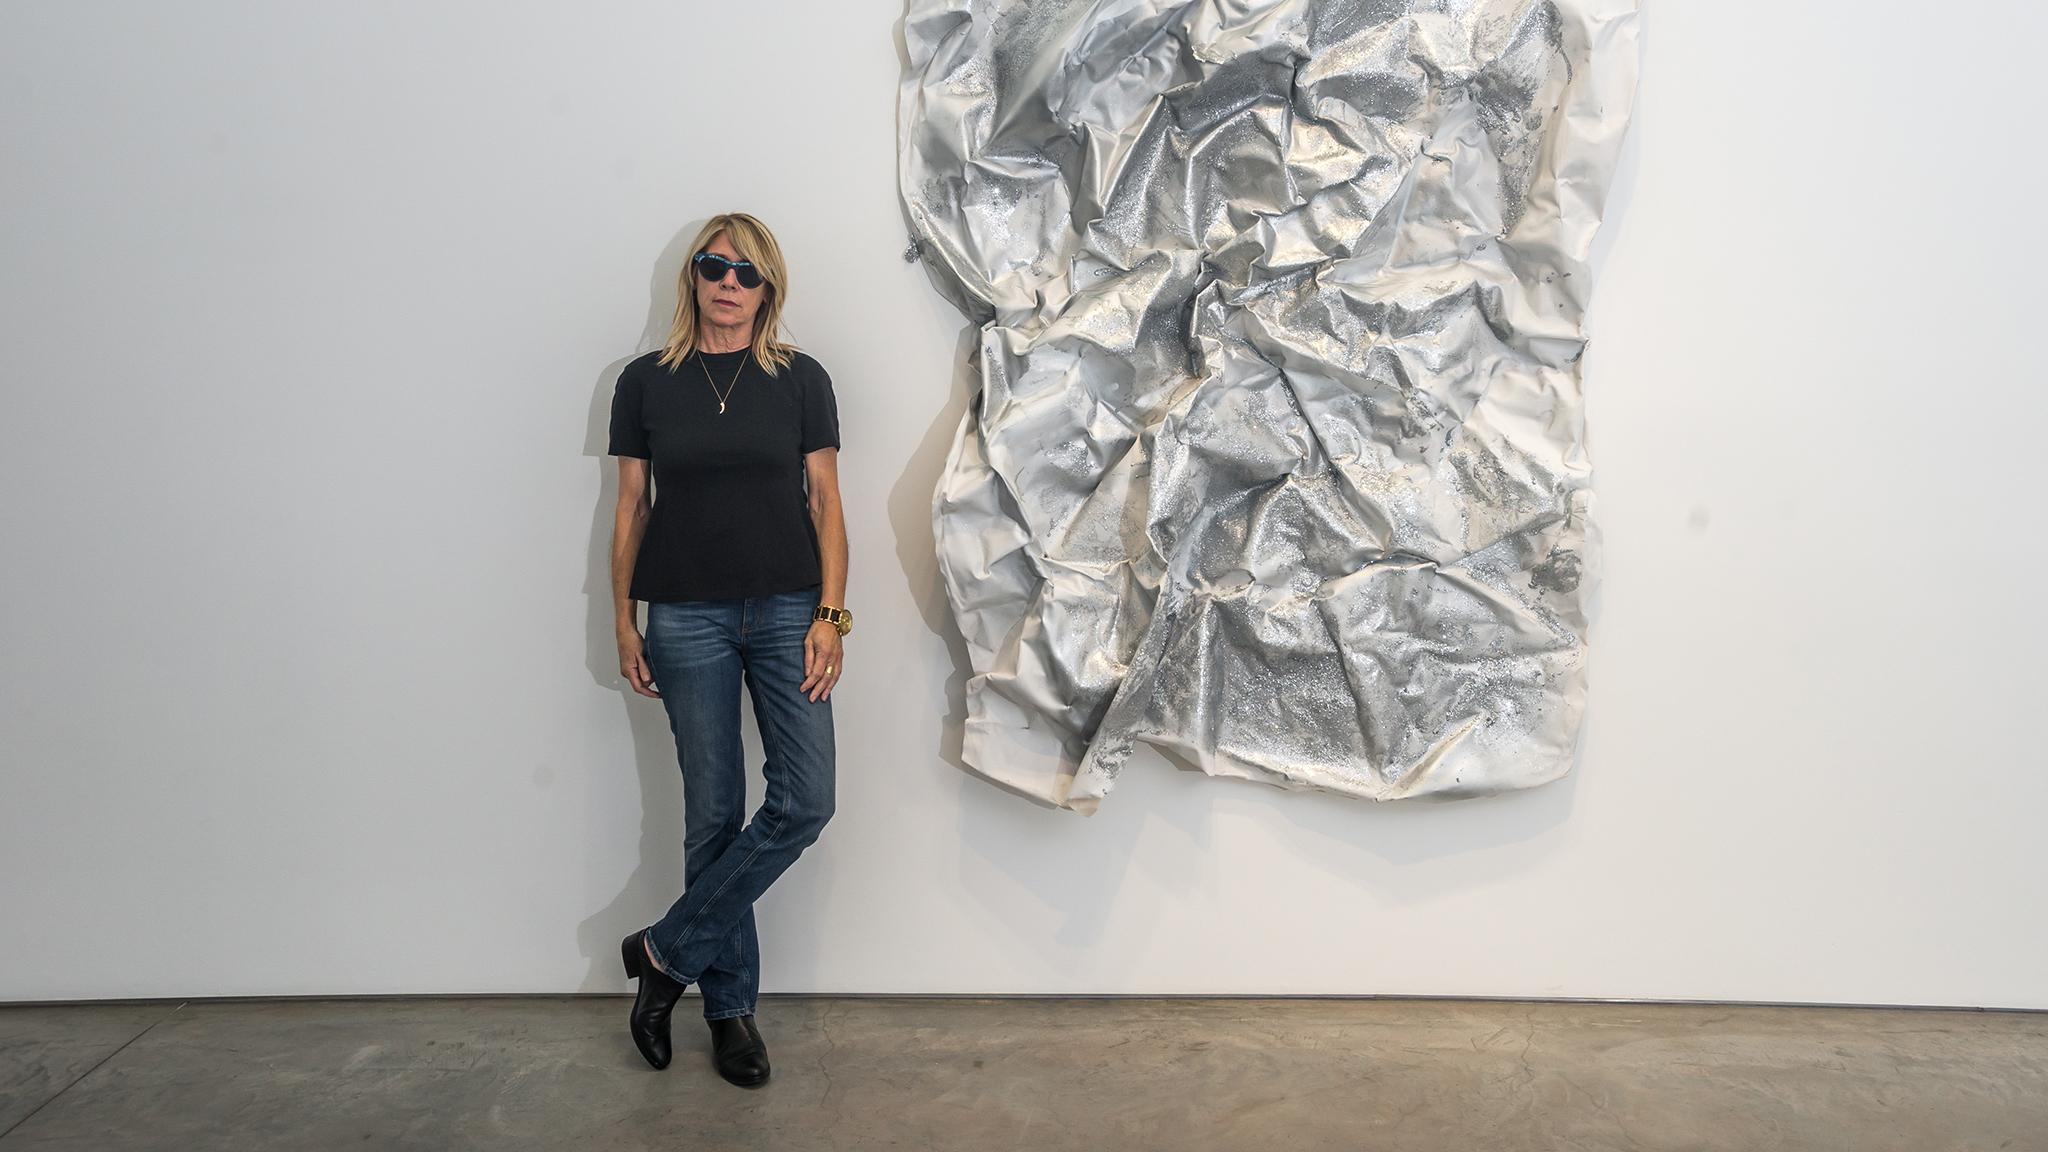 See Kim Gordon's artworks now on view in Chelsea